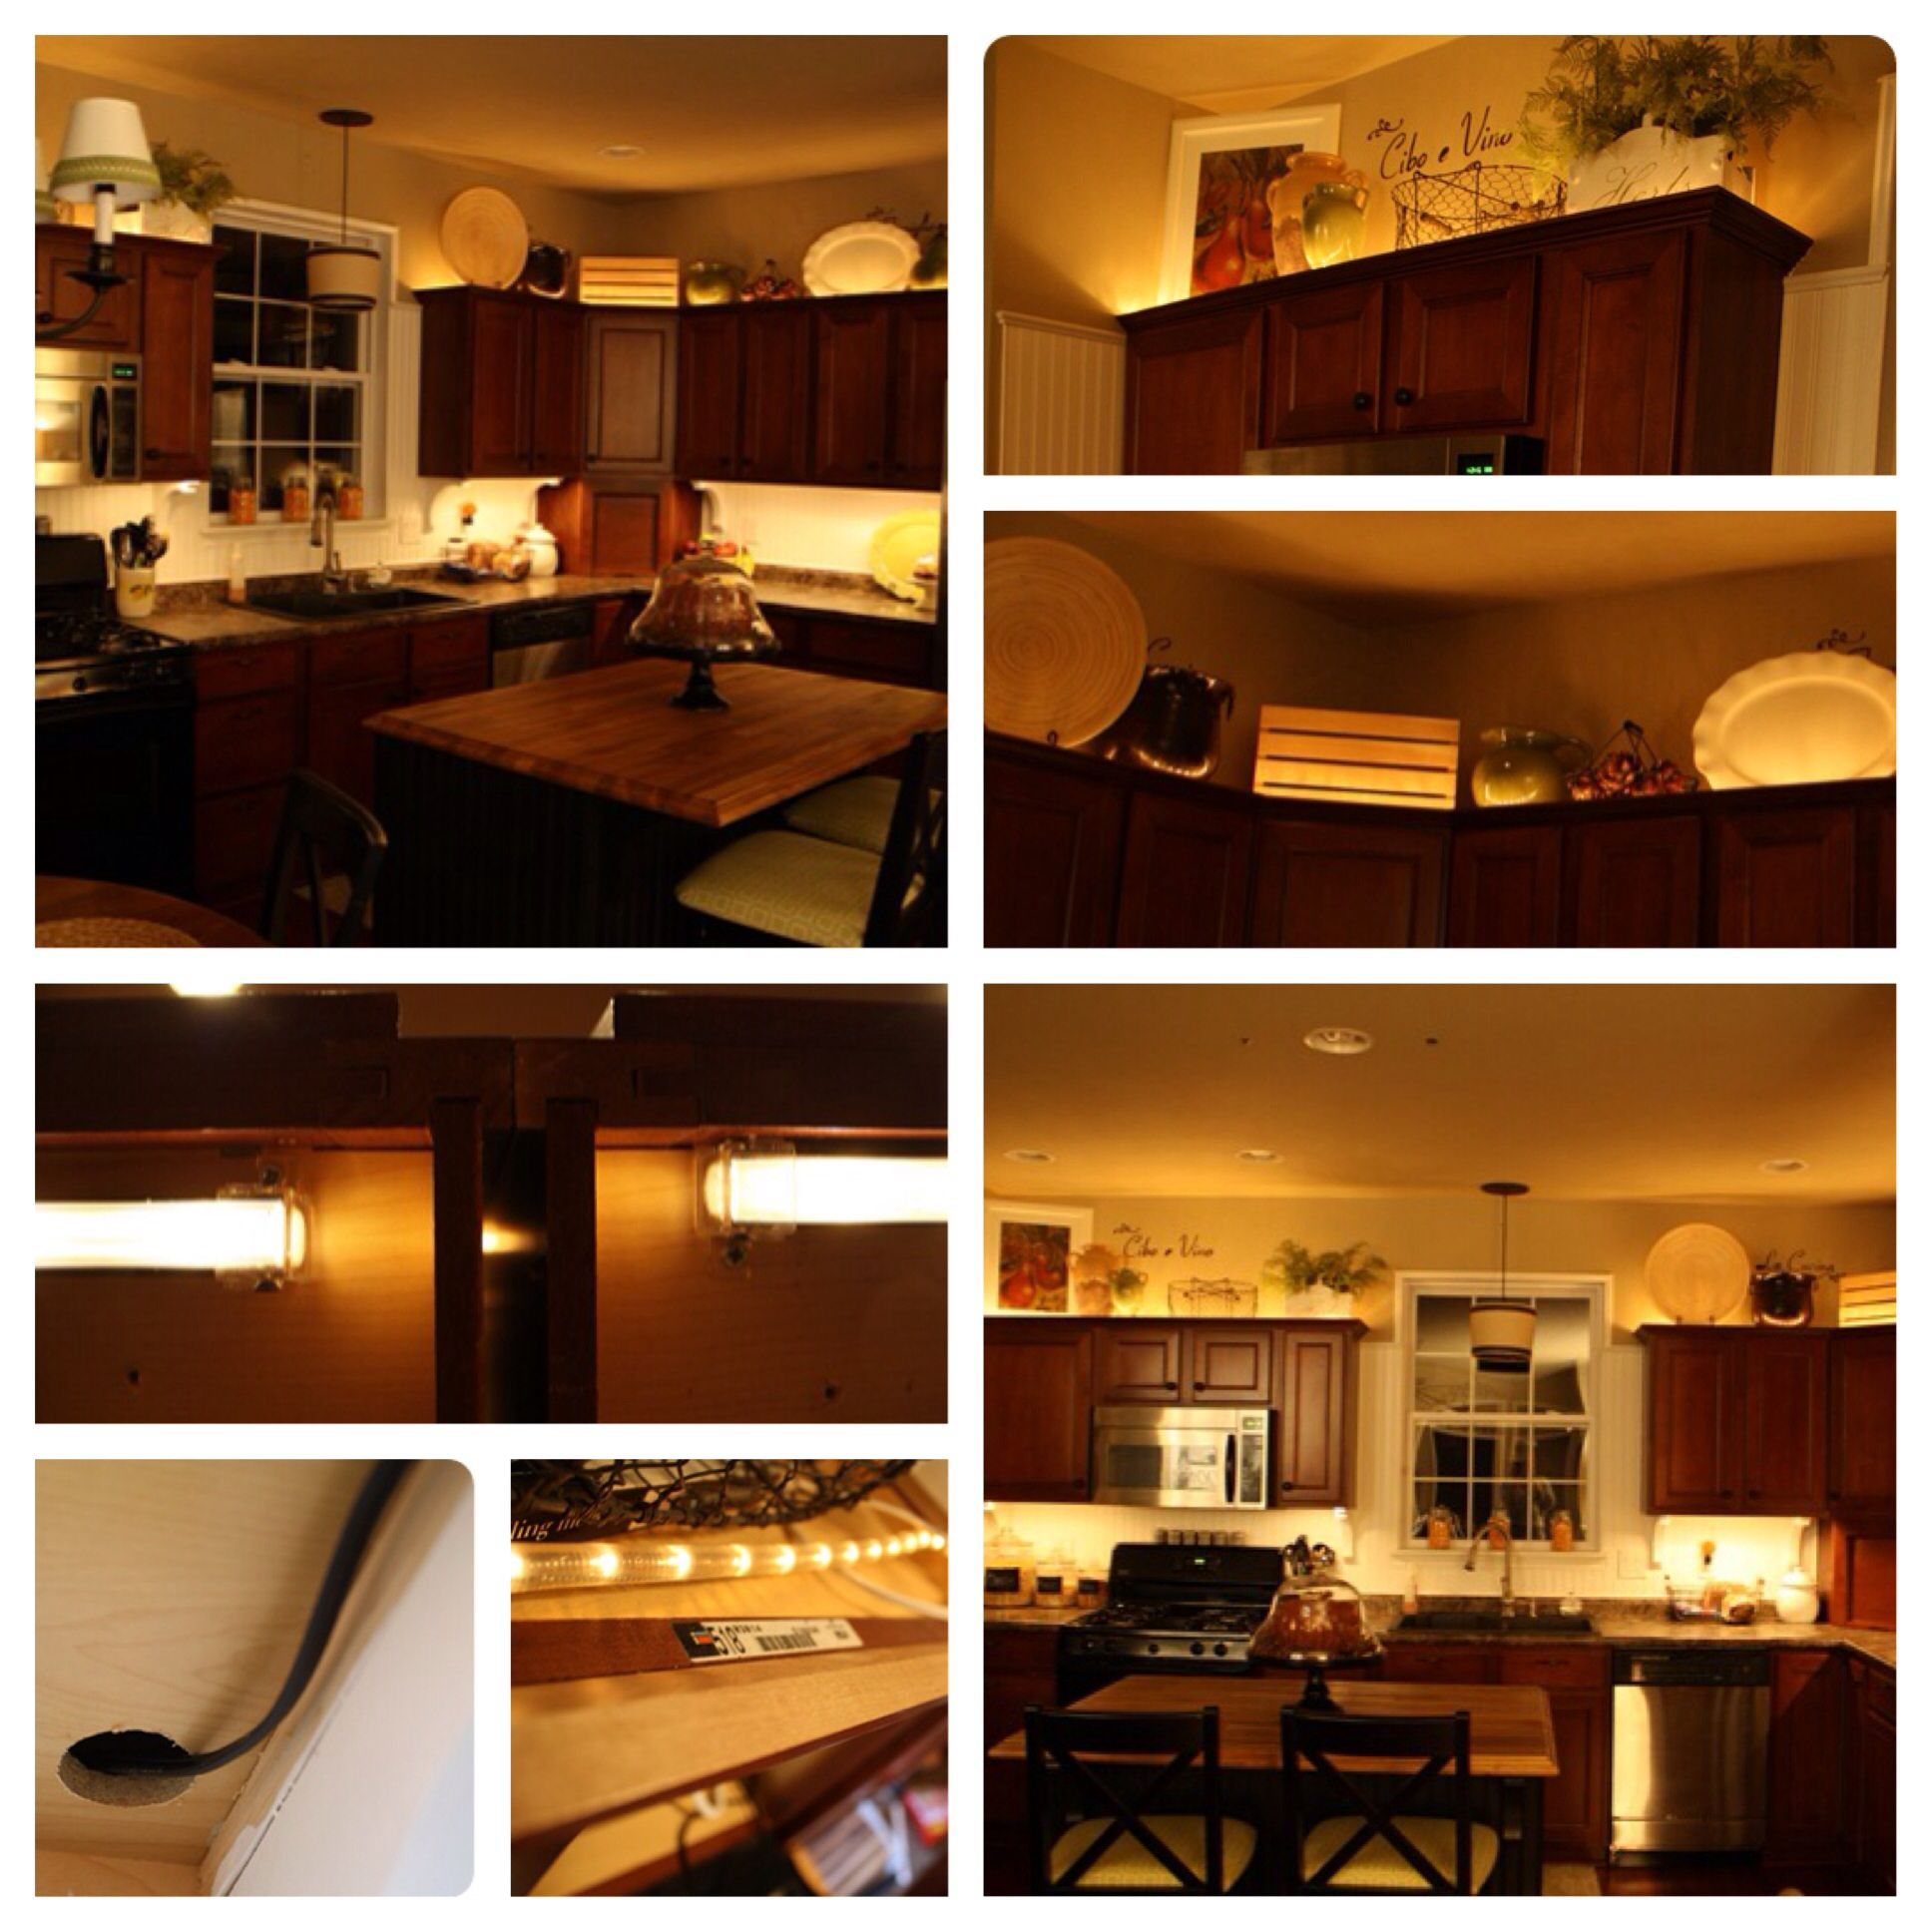 Rope Lights Above Cabinets In Kitchen Adding Lights Above And Below The Cabinets Diy Diy